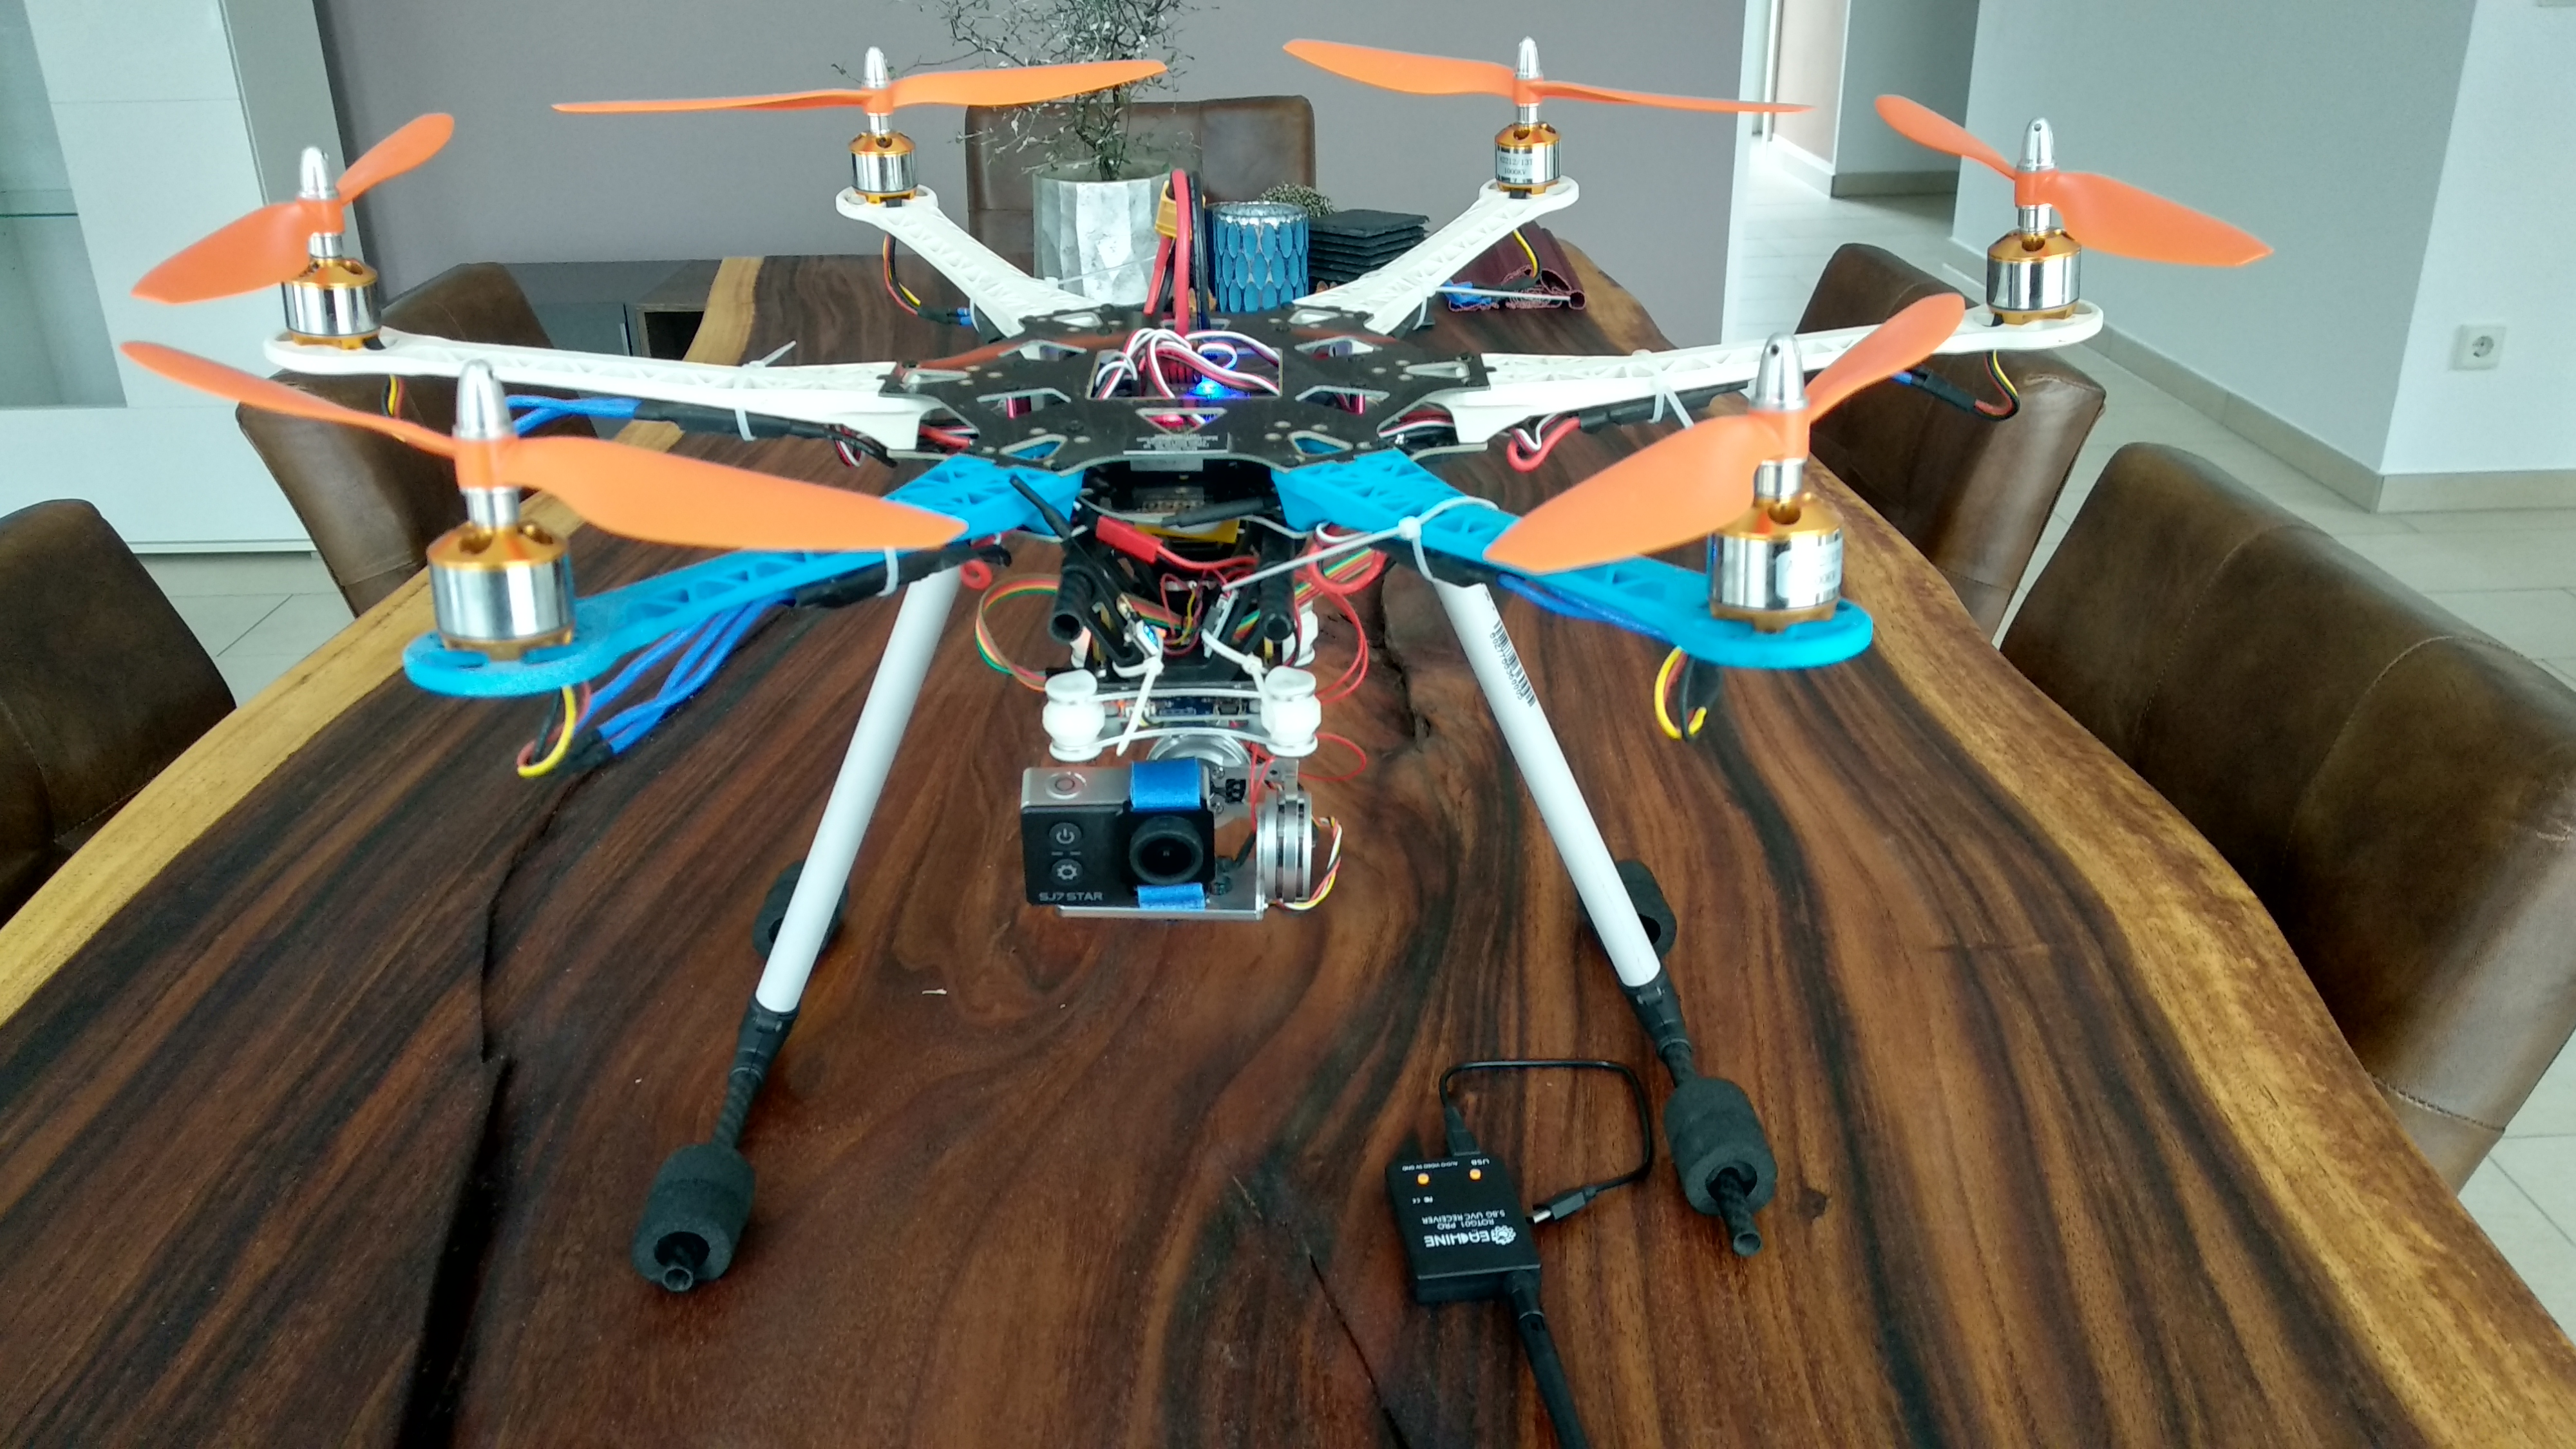 Drohne Selber Bauen Bausatz Selbstbau Eines Hexacopters Smarthome Internet Of Things